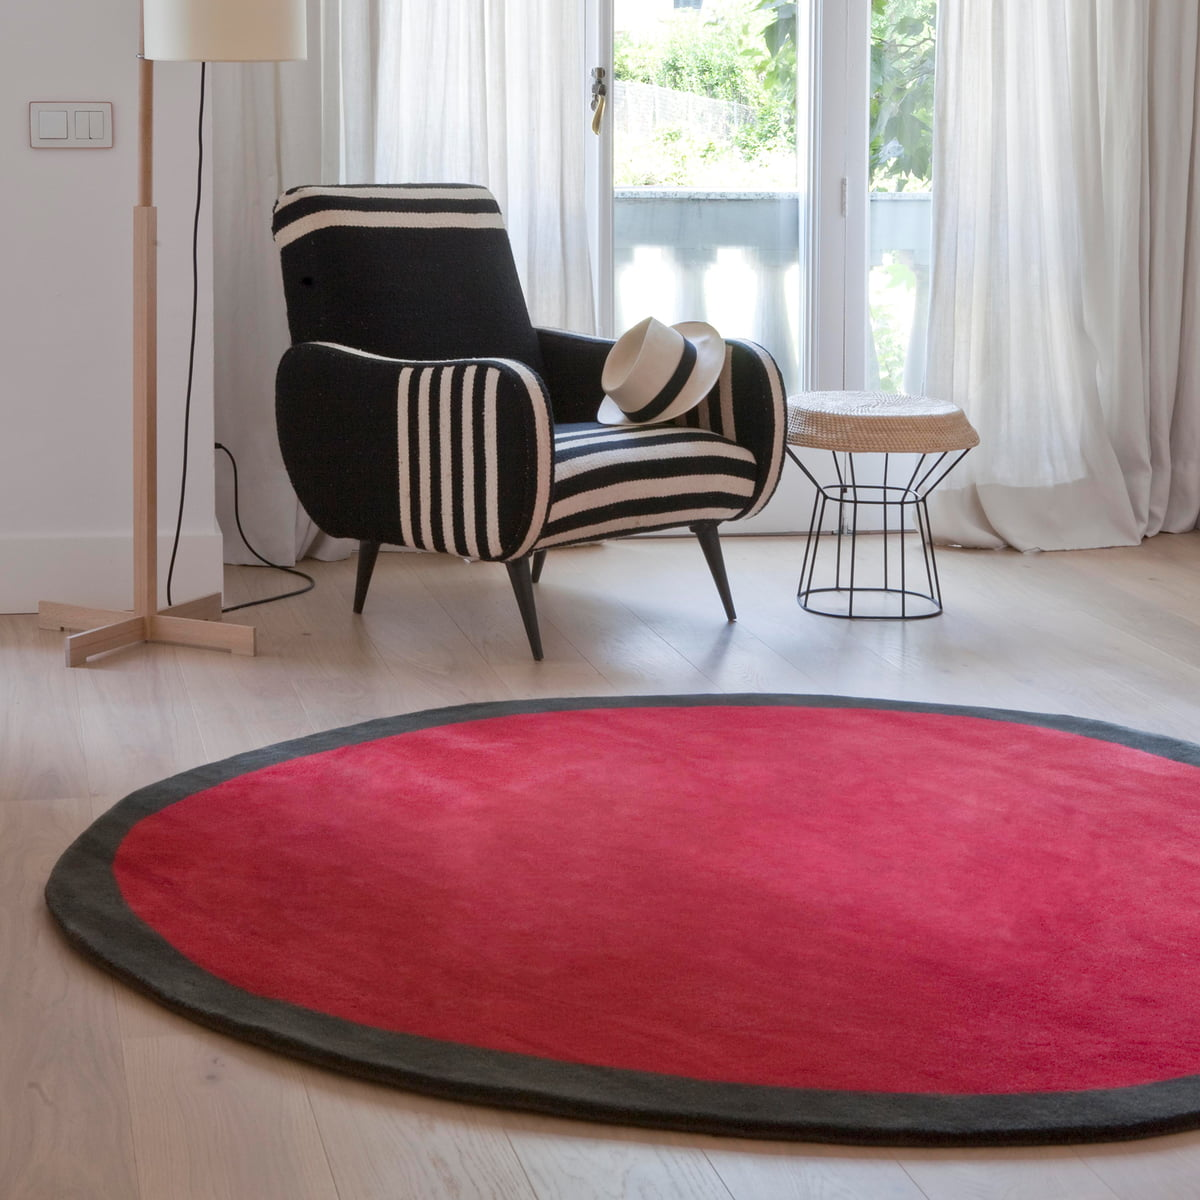 the aros rug by nanimarquina in the shop - nanimarquina  aros round  Ø  cm